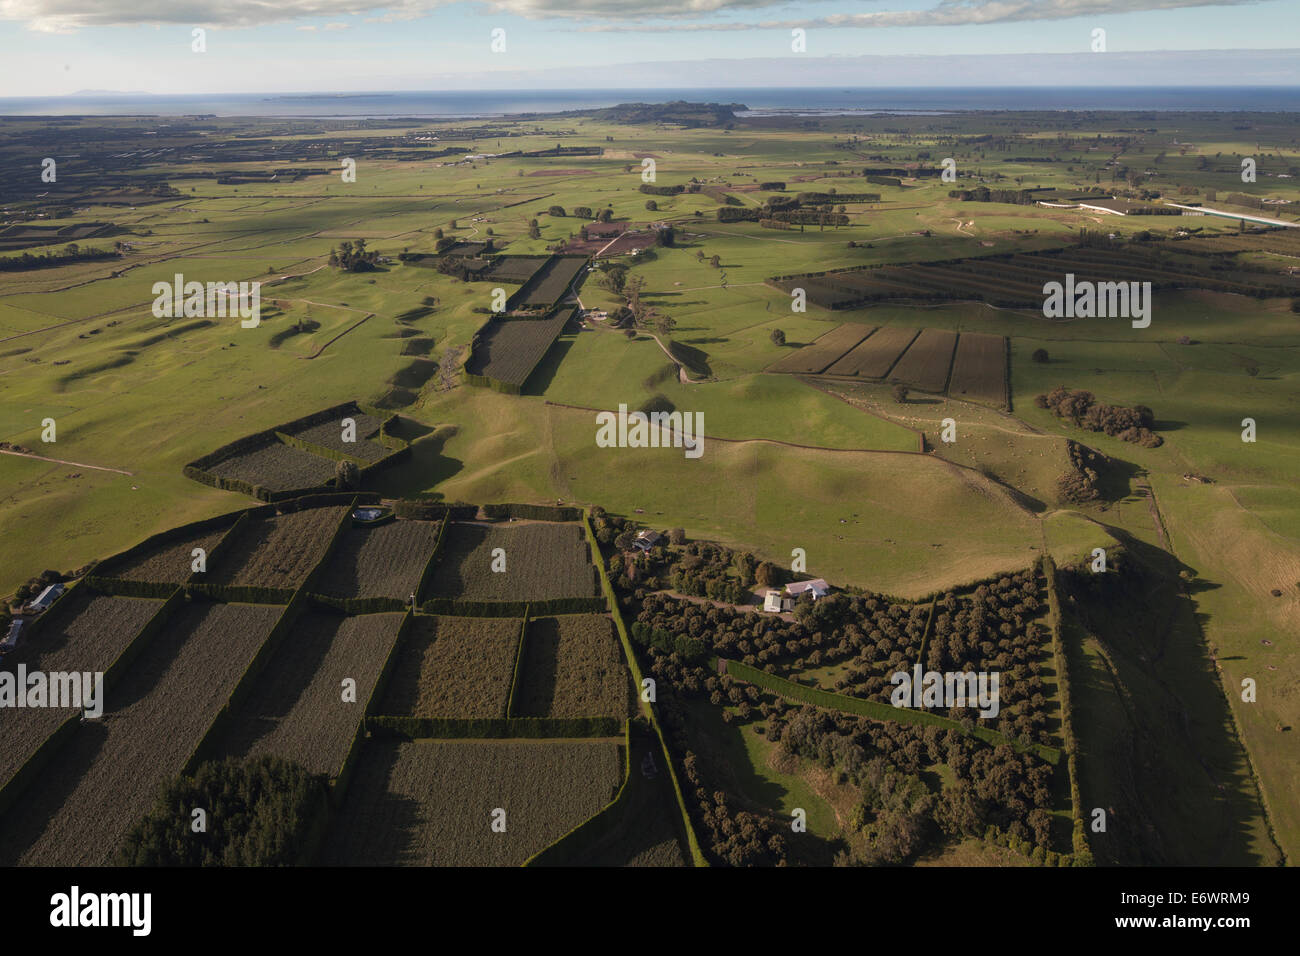 Aerial view of kiwifruit orchards, Actinidia deliciosa, Plantations with hedges as windbreakers, Bay of Plenty, - Stock Image